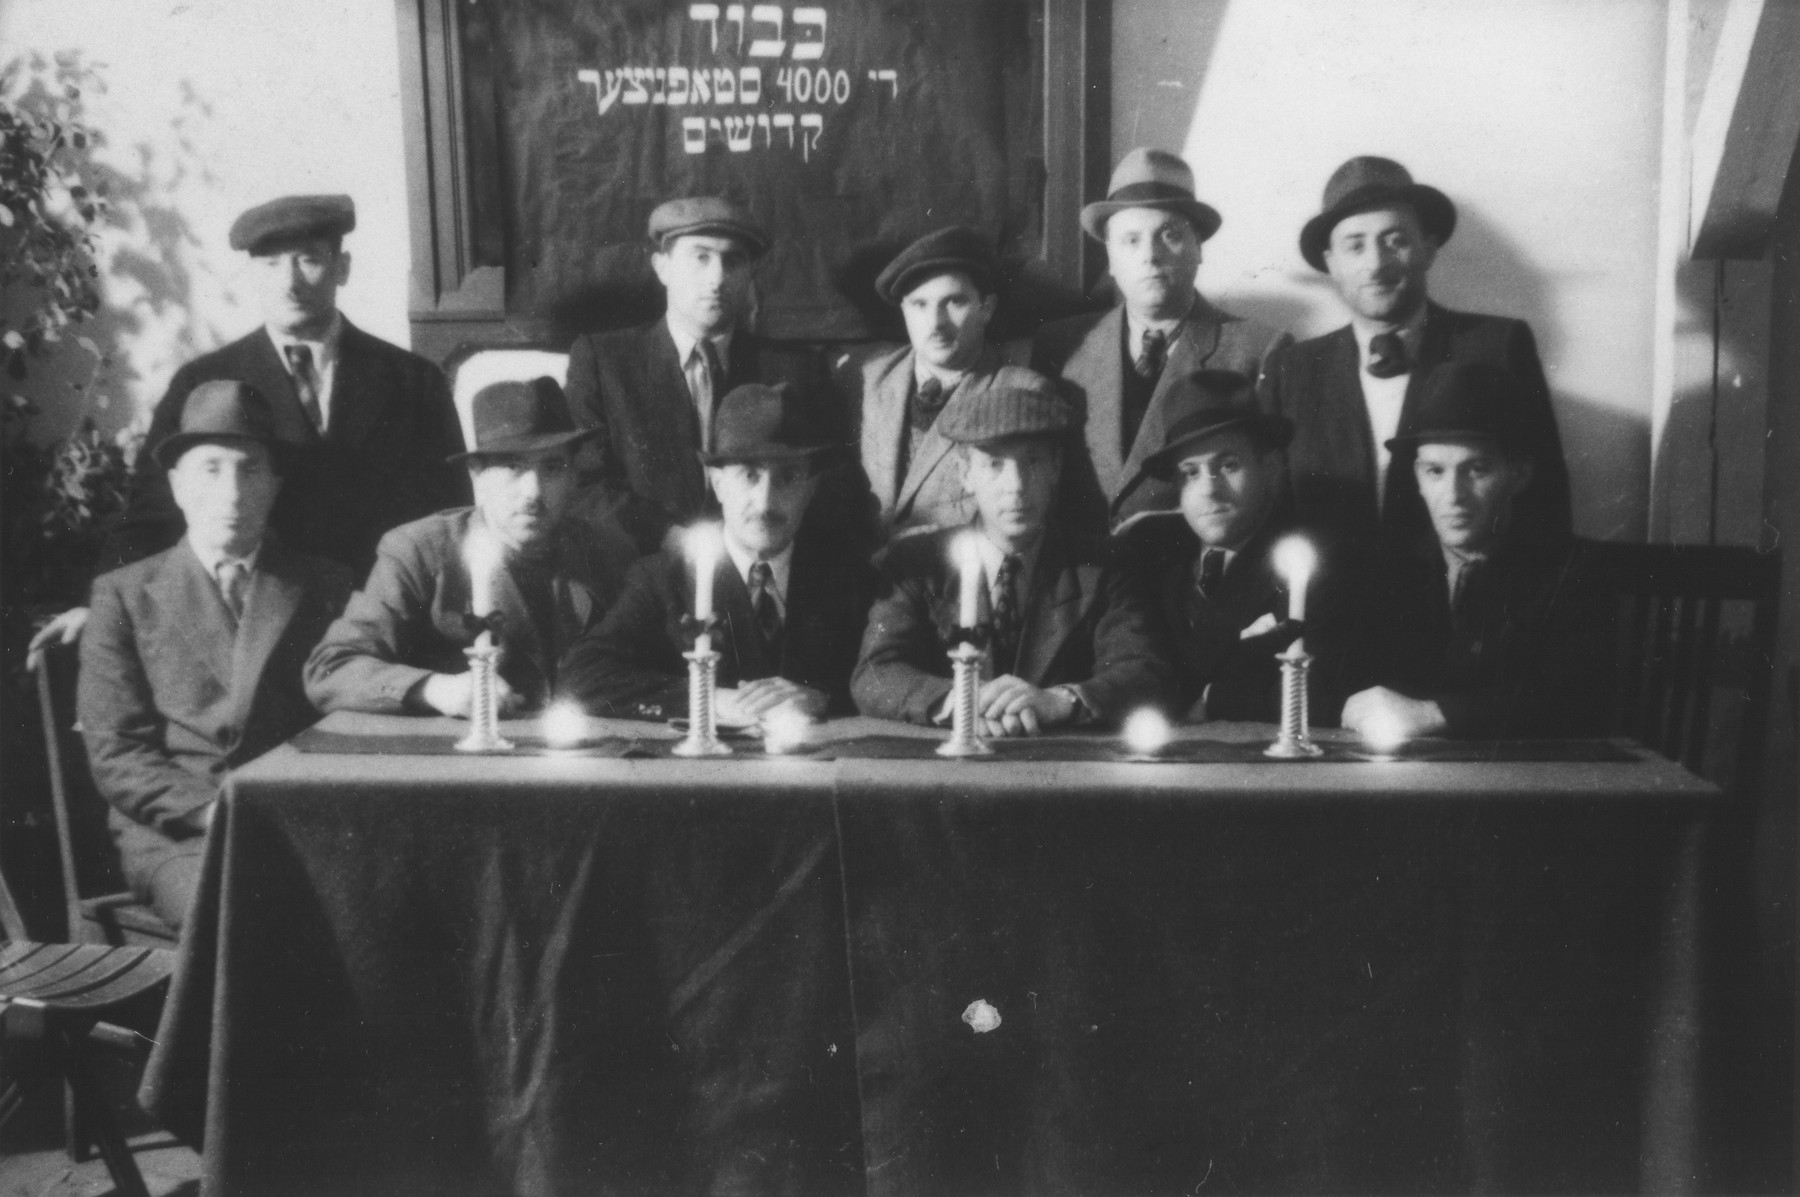 Memorial service in memory of the 4000 Jews from Stopnice killed in the Holocaust.  Among those pictured is Yidl Michaelowski (standing on the far left) and Mordechai Silberberg (center).